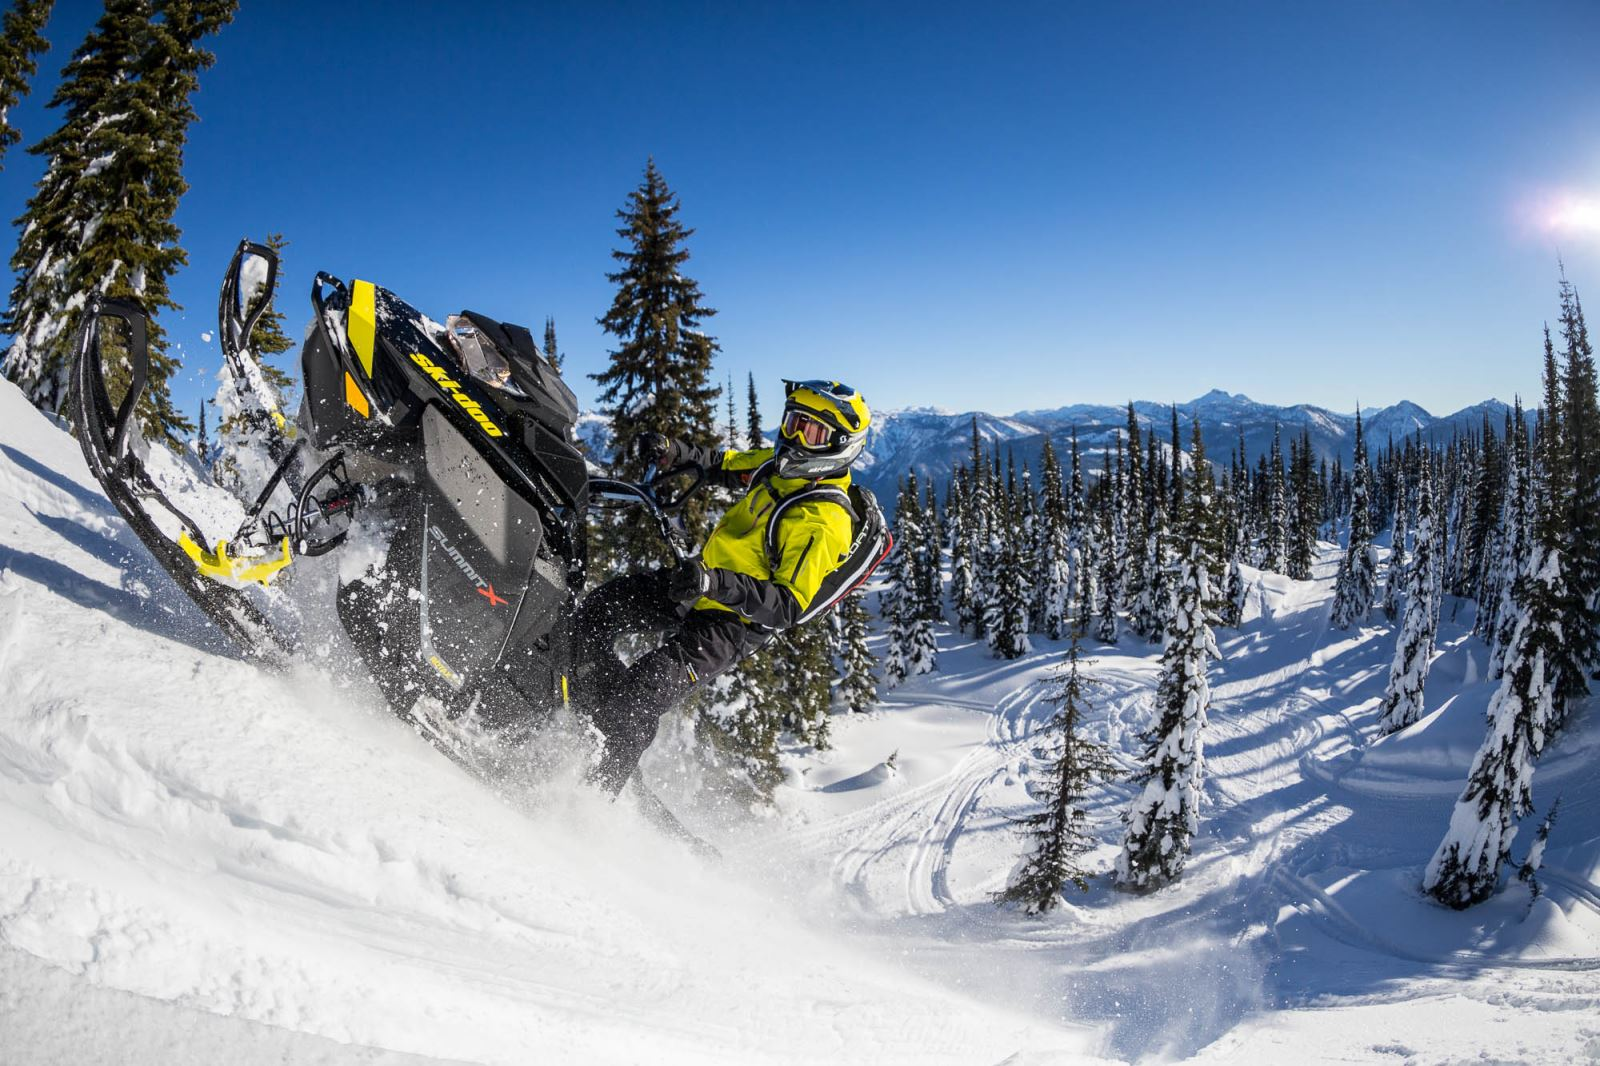 Ski Doo 2017 Everything You Need To Know About The Gen4 850 E Tec Wiring Diagram Summits Snowest Magazine